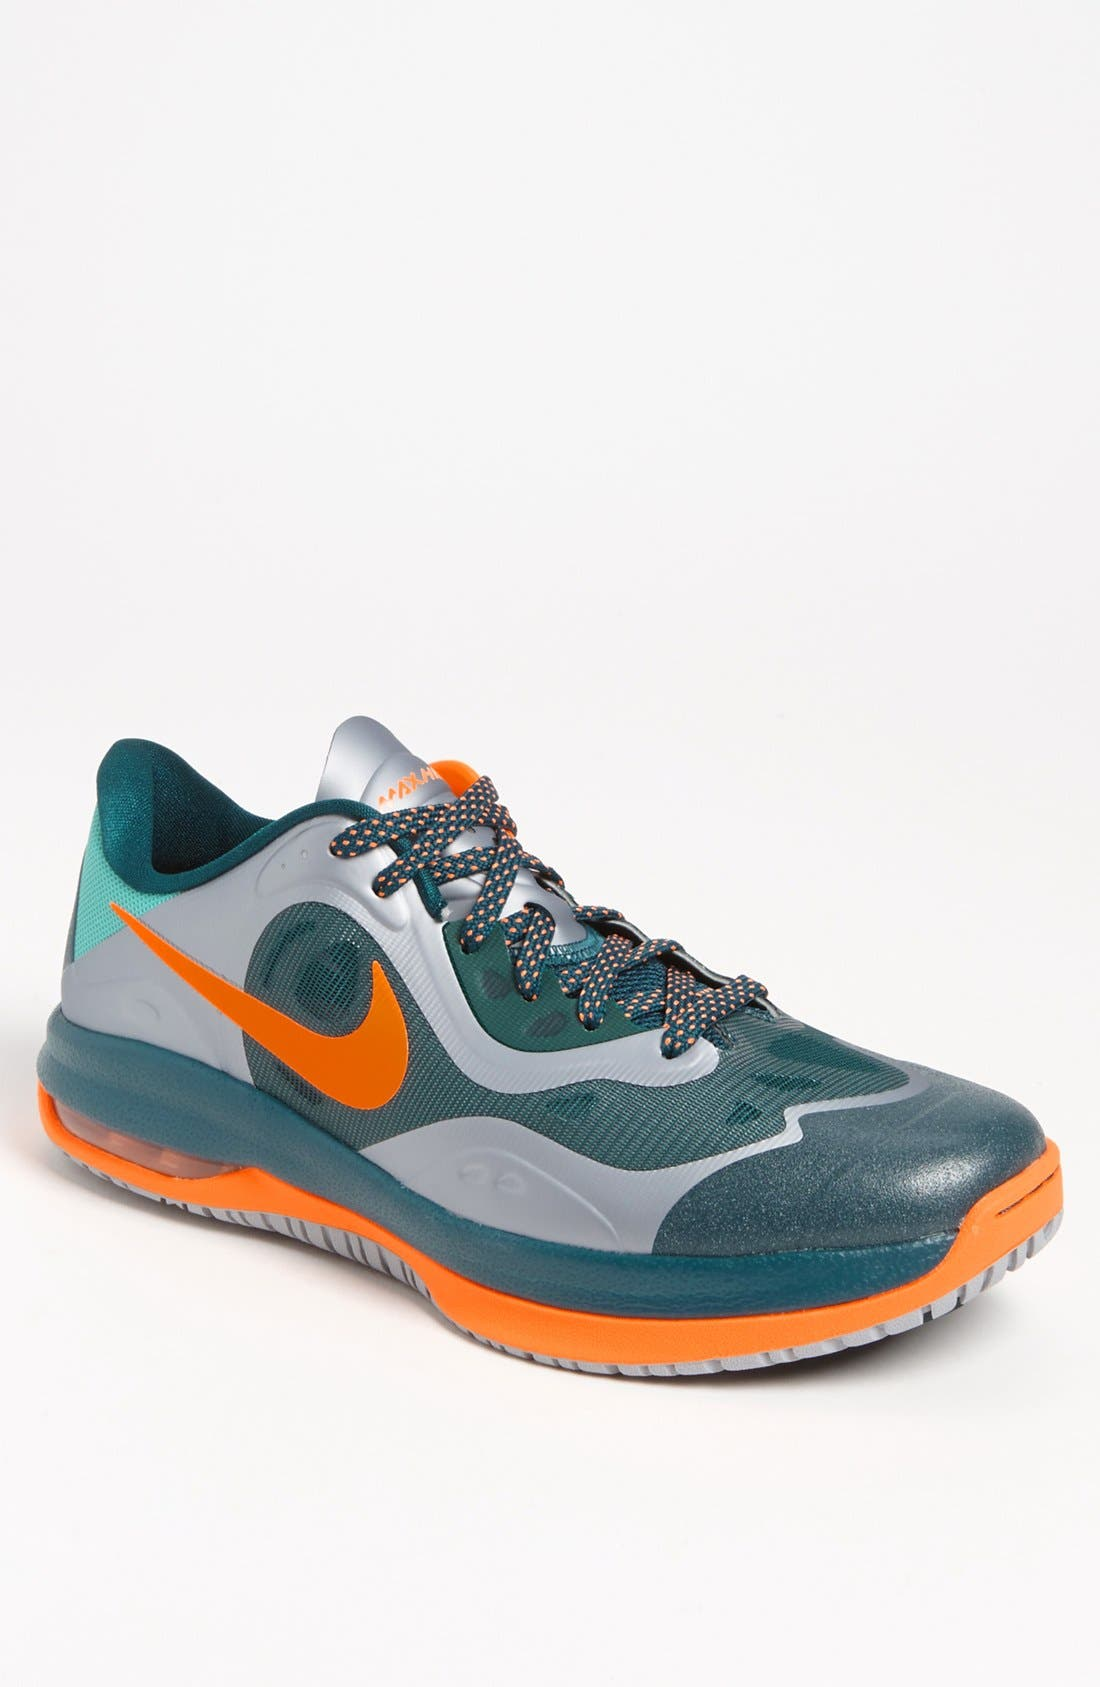 Main Image - Nike 'Max H.A.M. Low' Basketball Shoe (Men)